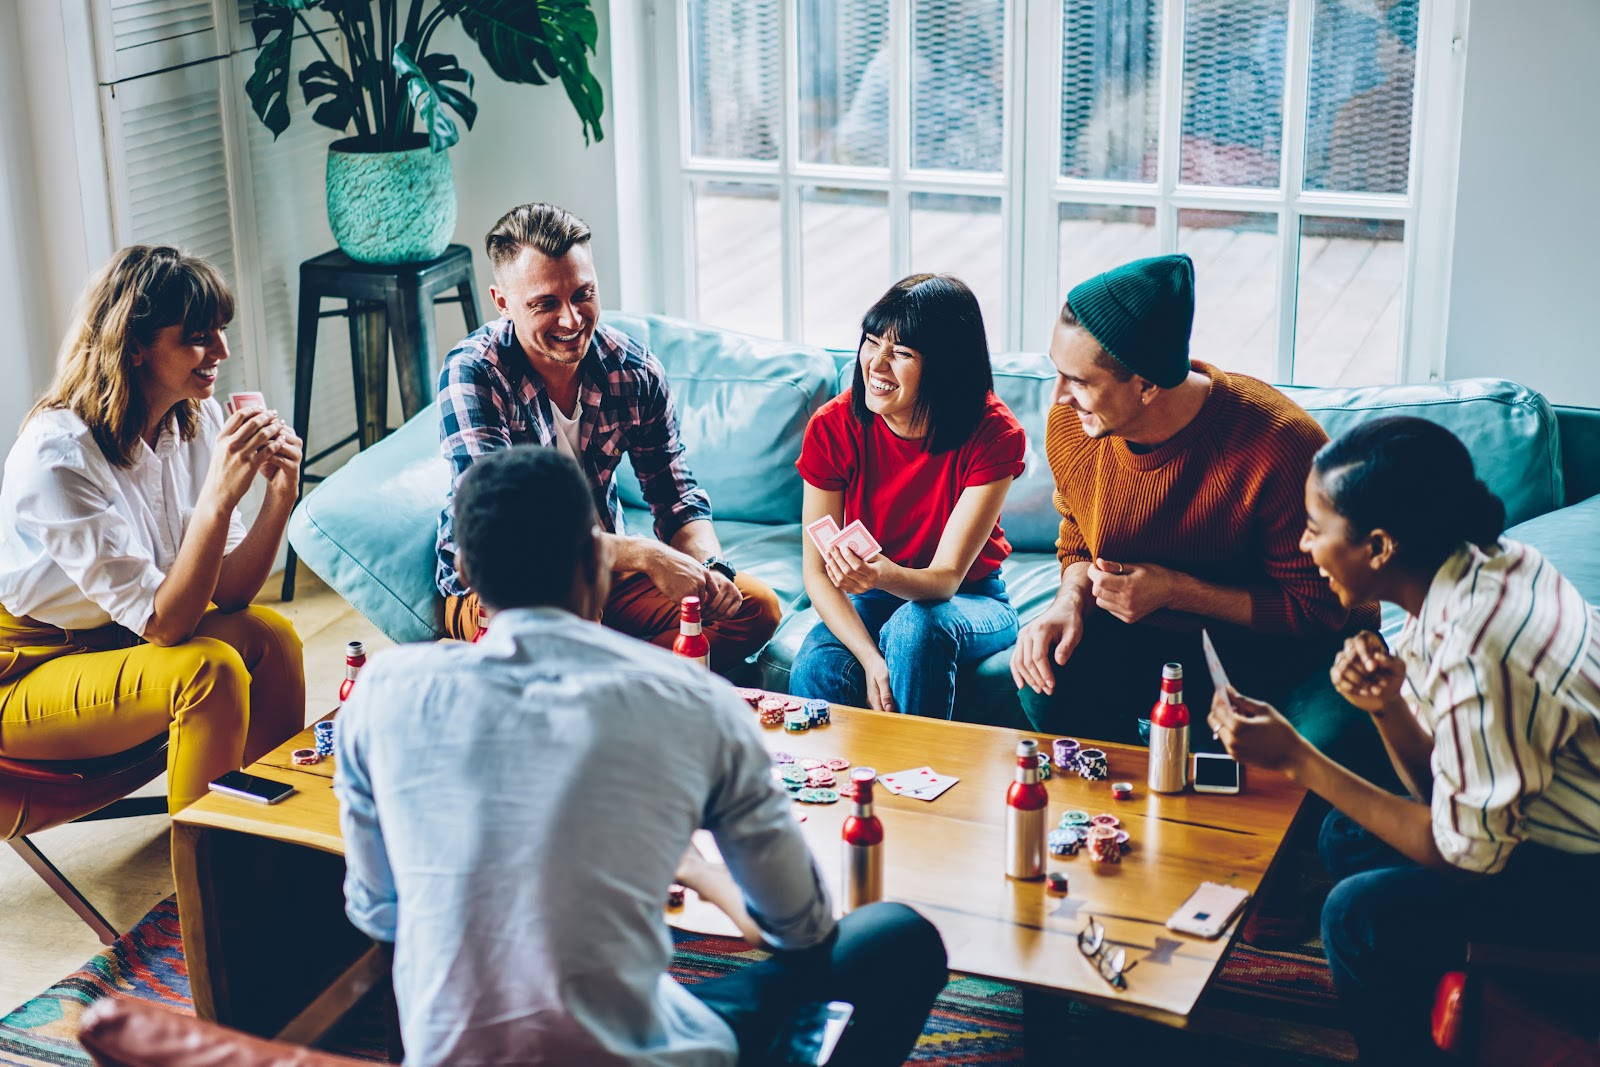 Six friends play poker around a coffee table.